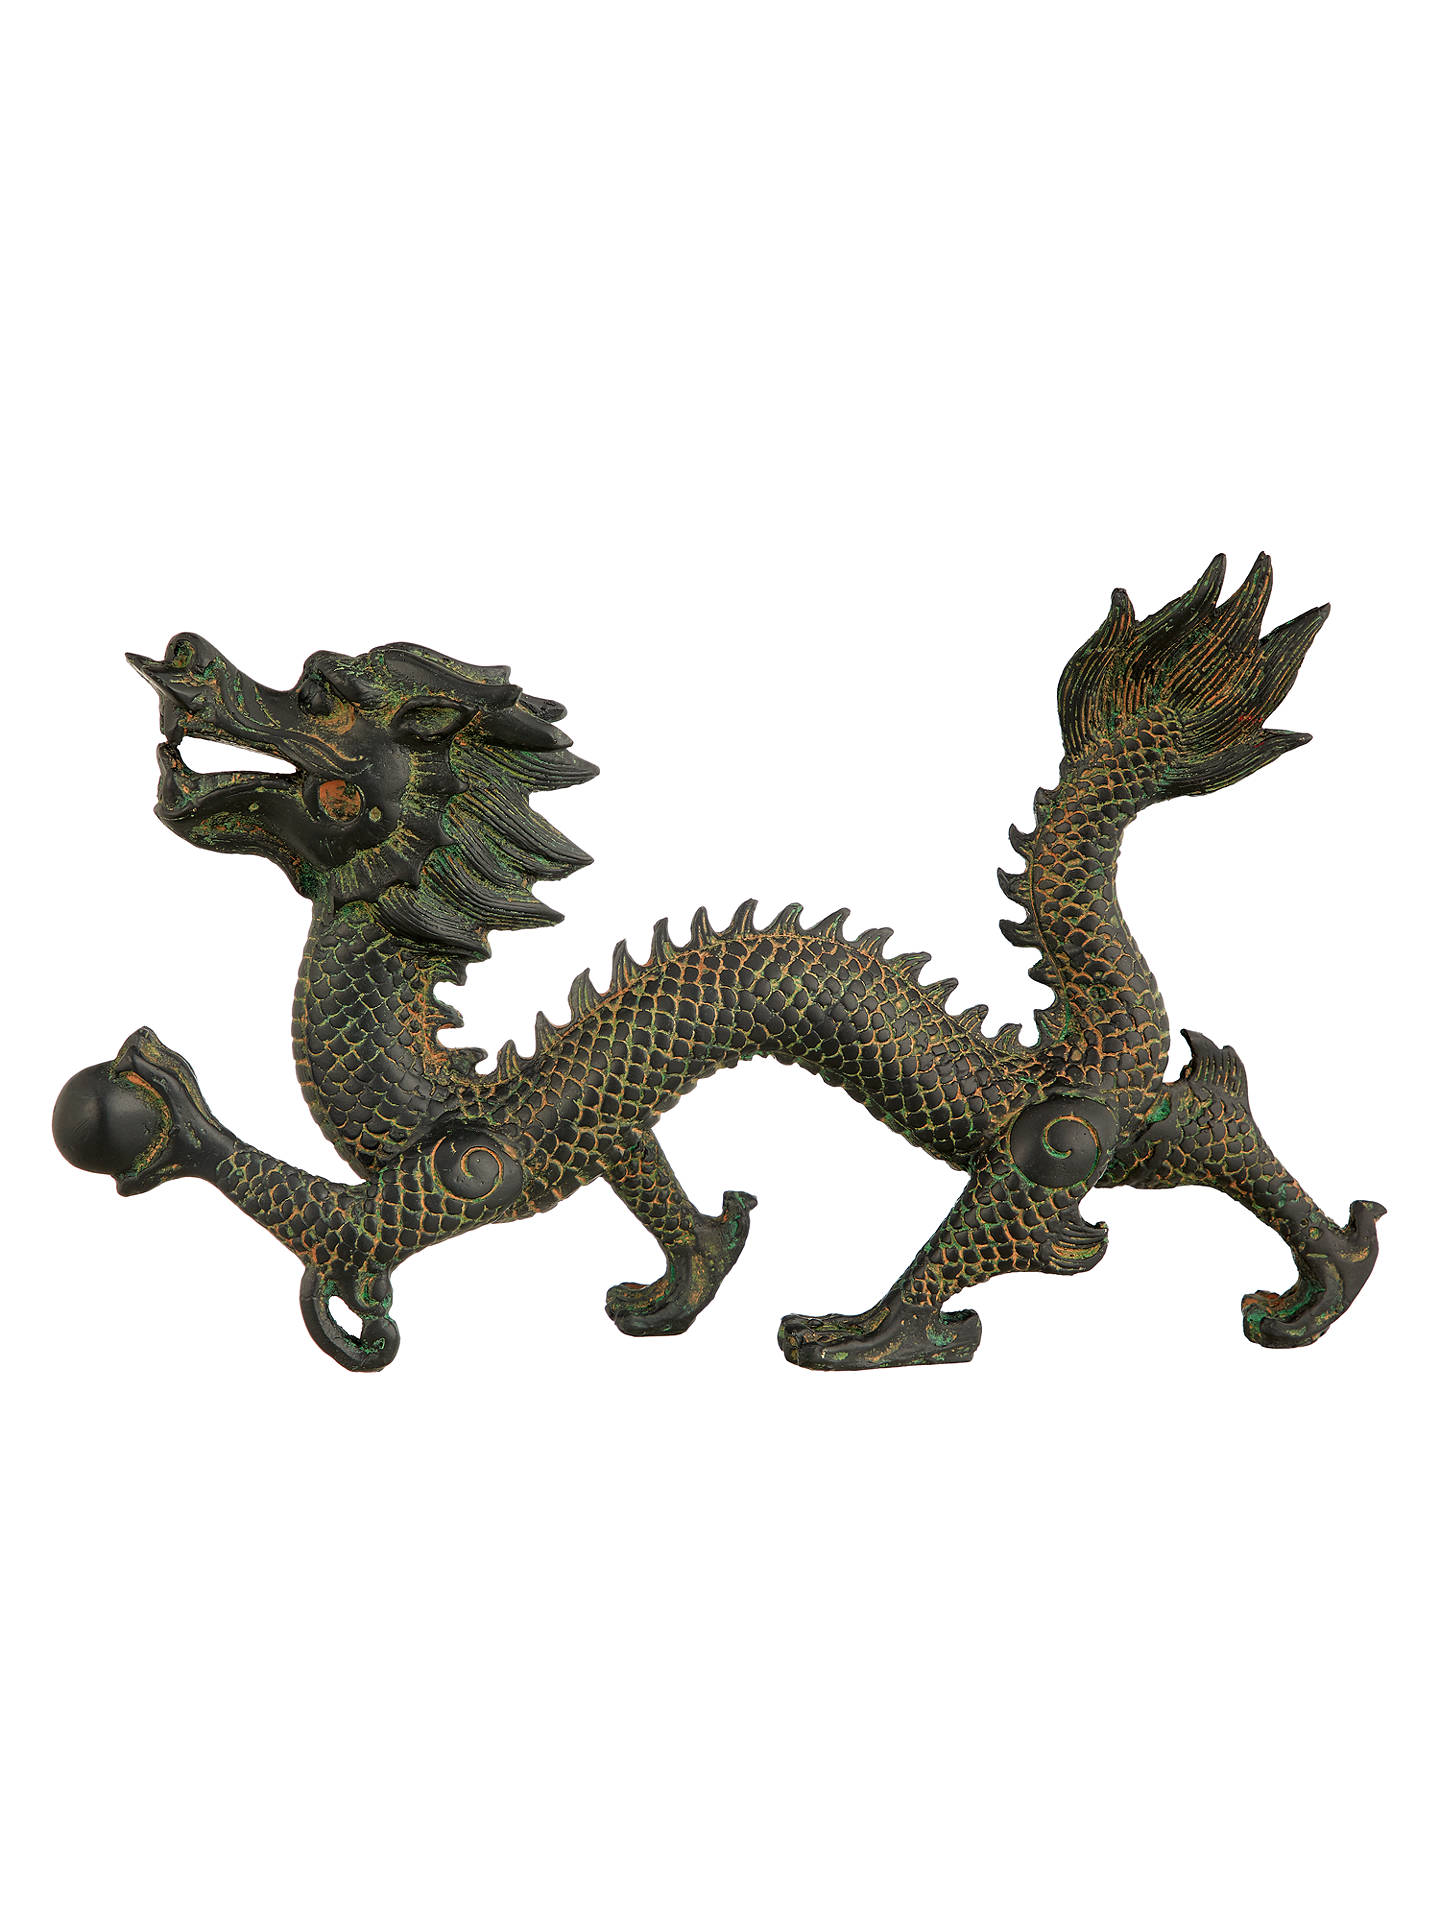 BuyJohn Lewis & Partners Dragon Sculpture, Antique Black, L26cm Online at johnlewis.com